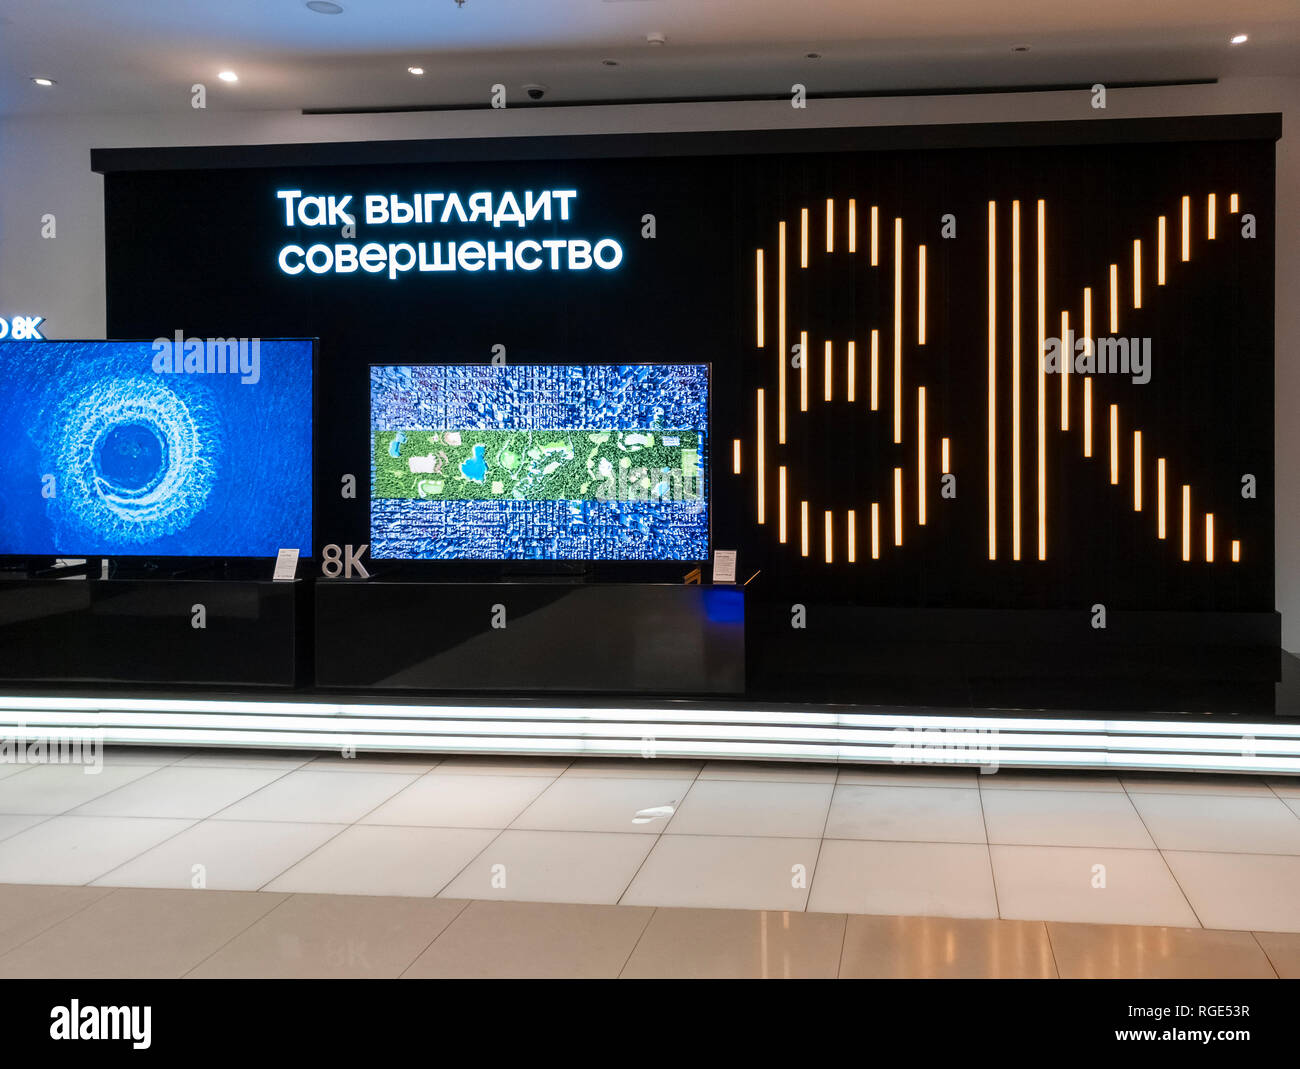 Moscow, Russia - January 27.2019. 8K TVs in the Samsung brand store - Stock Image